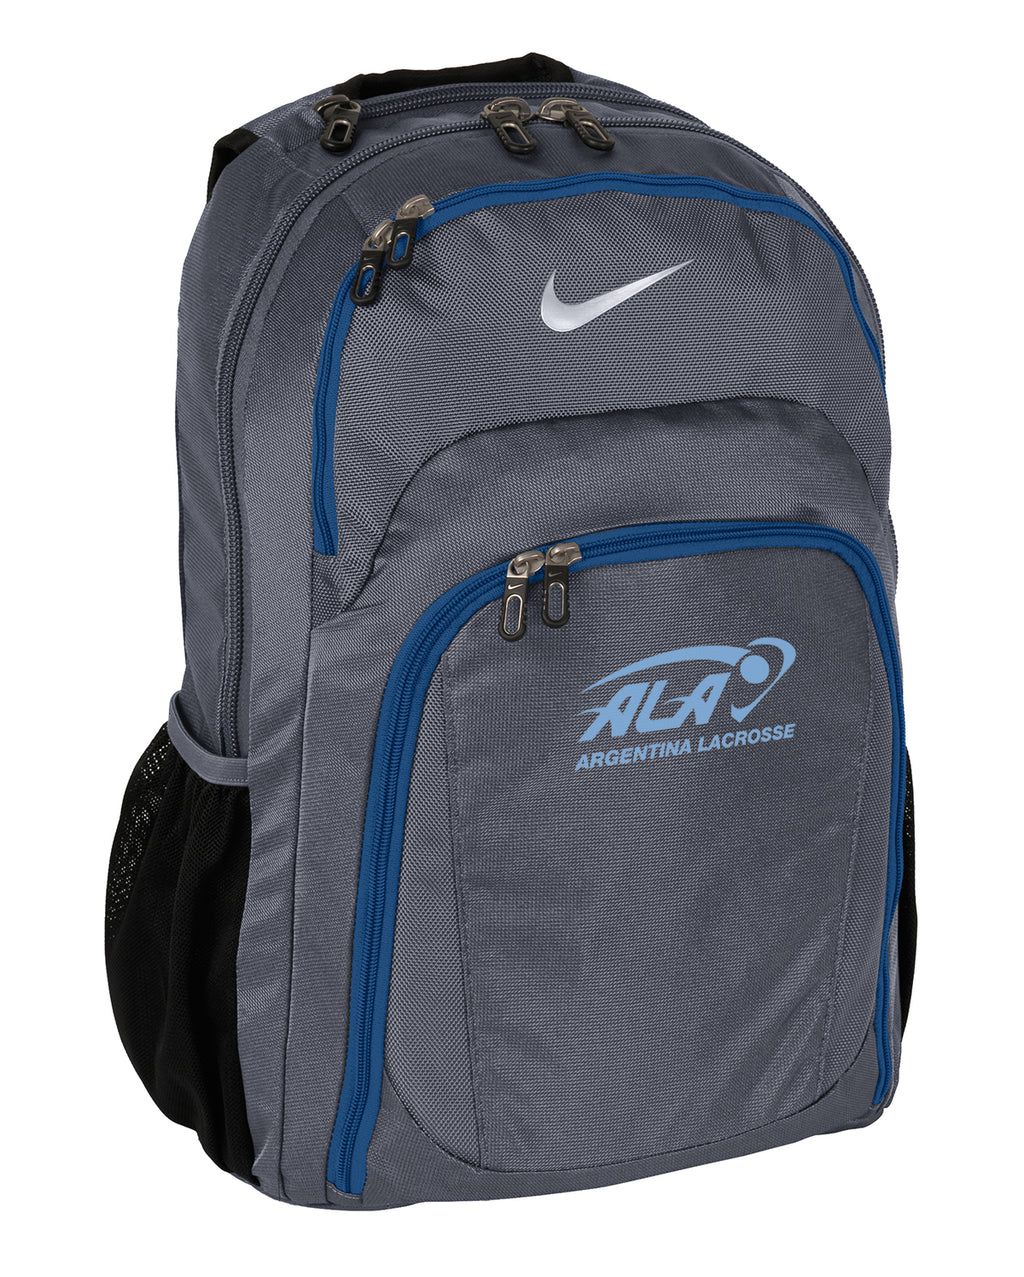 Argentina Lacrosse Nike Backpack